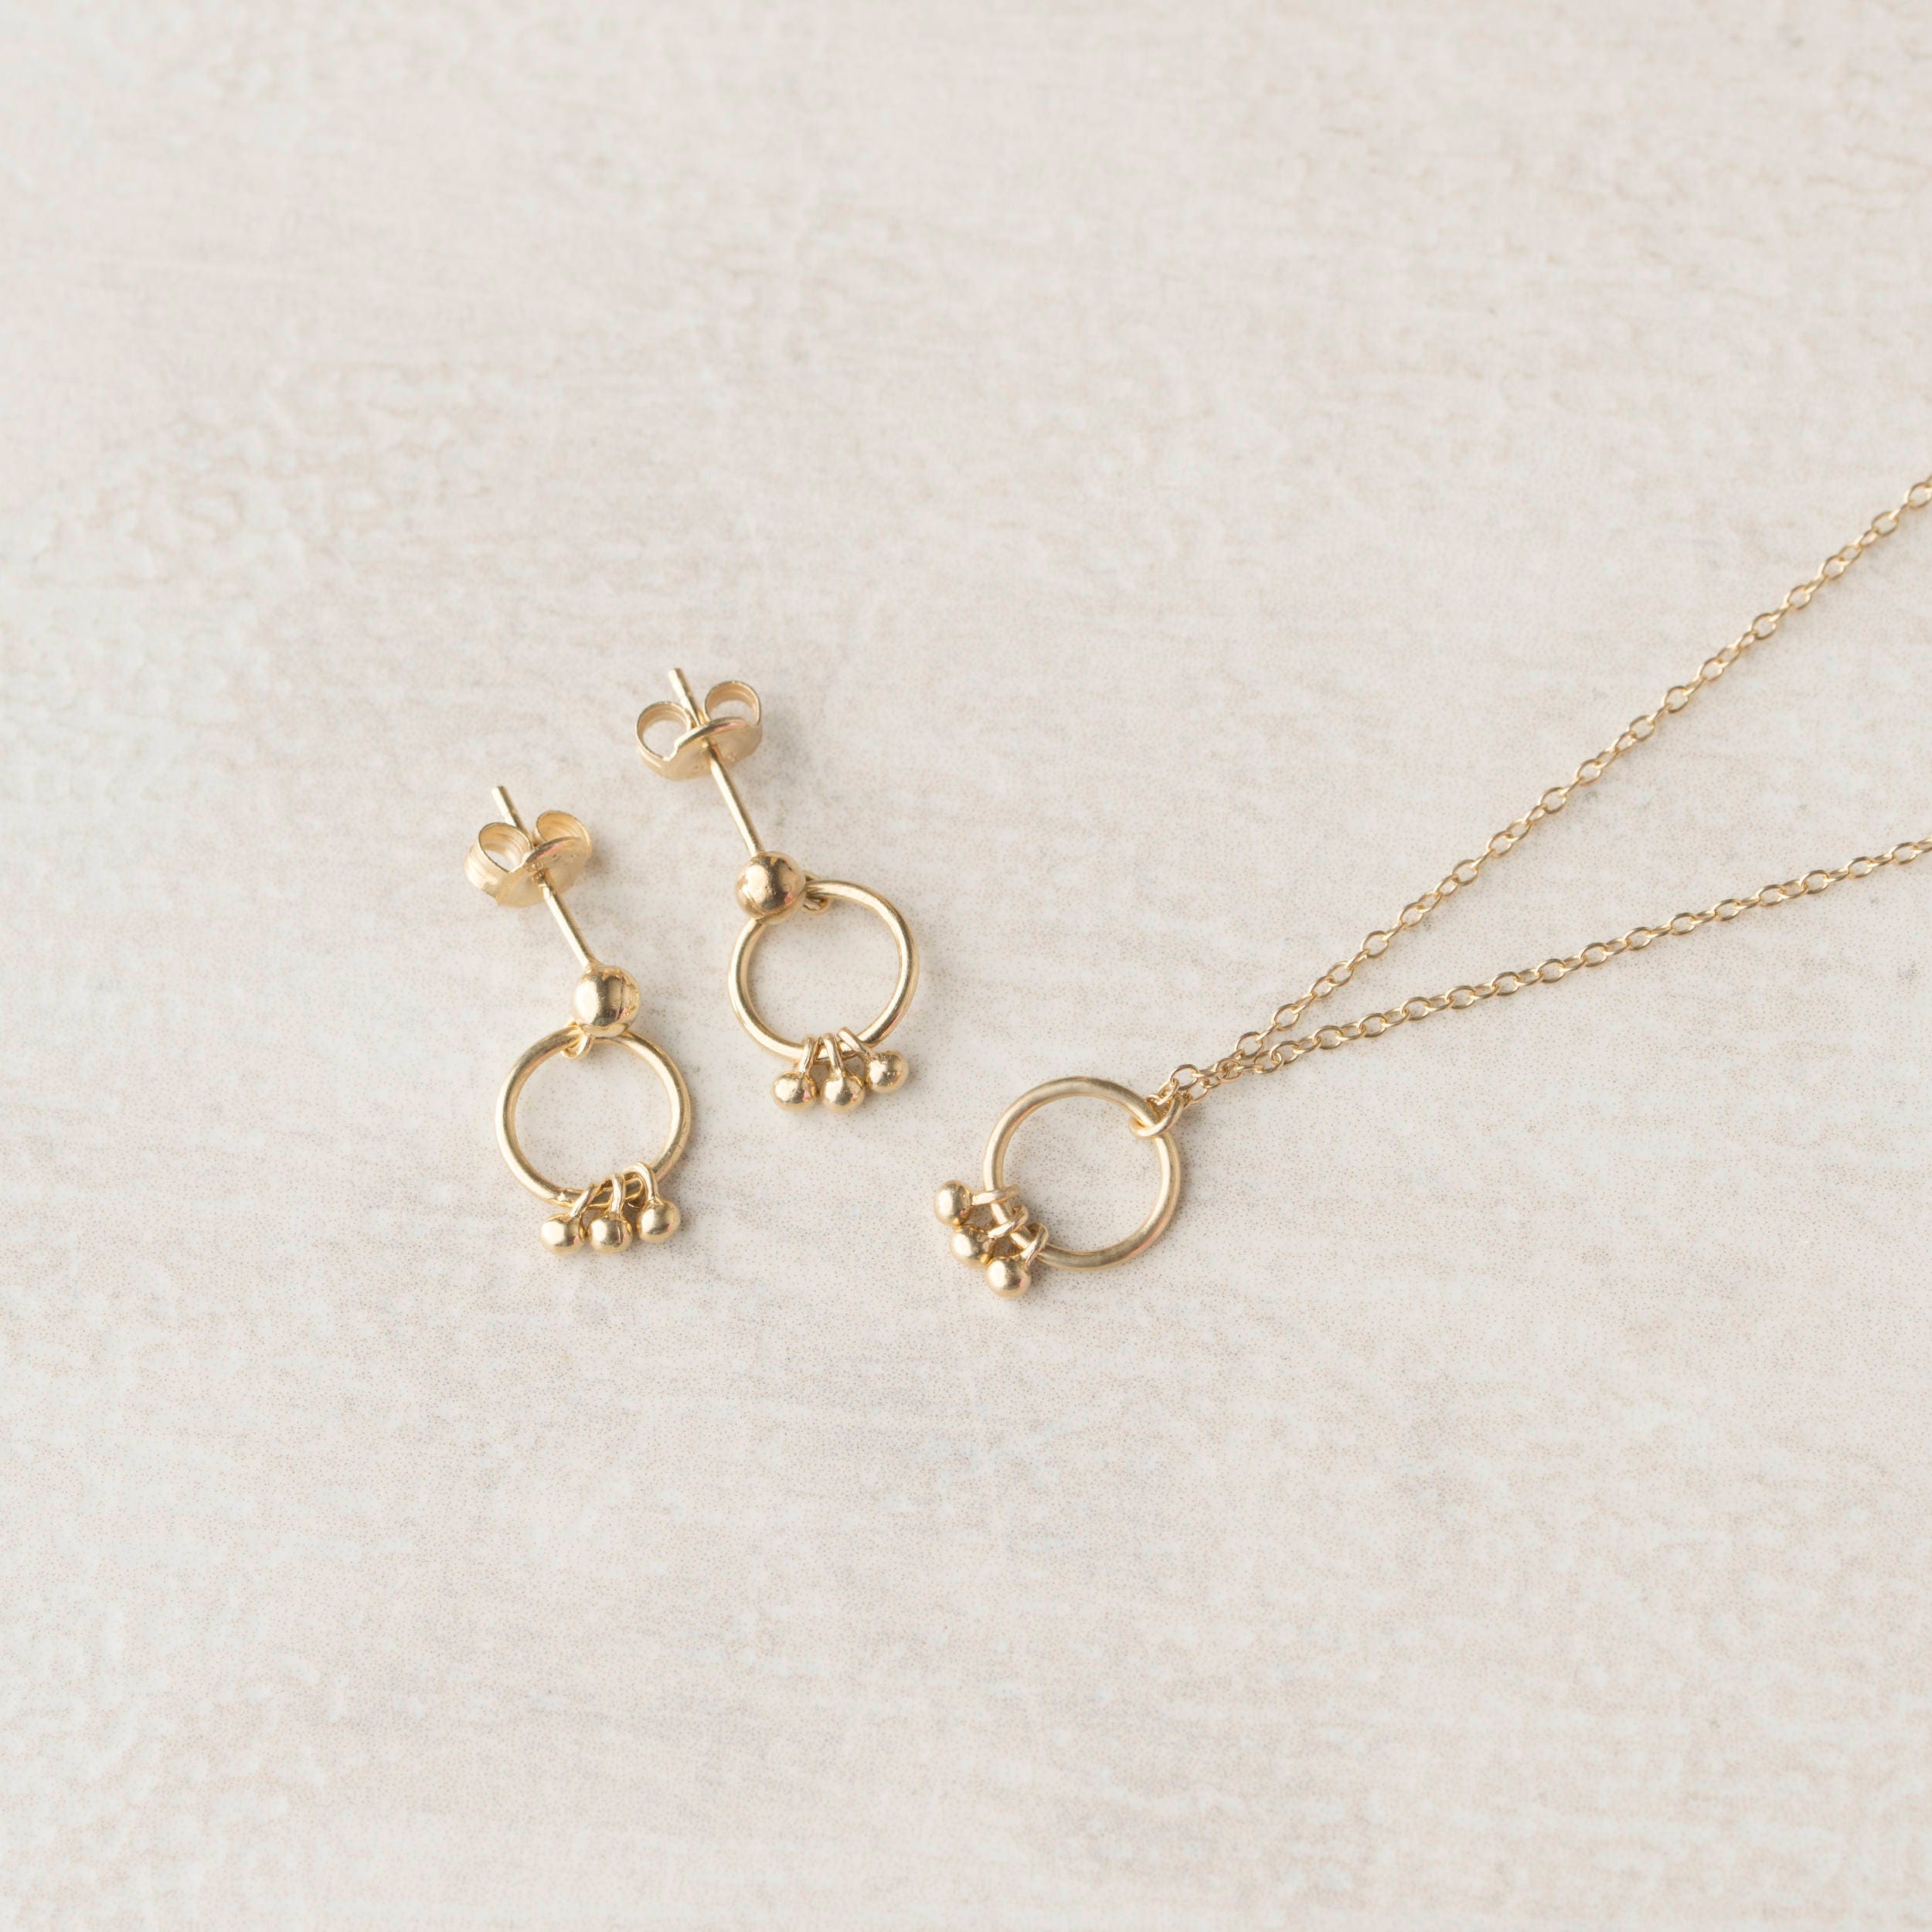 Minimalist Jewelry Set, Delicate Jewelry Set Gold, Dainty Jewelry ...